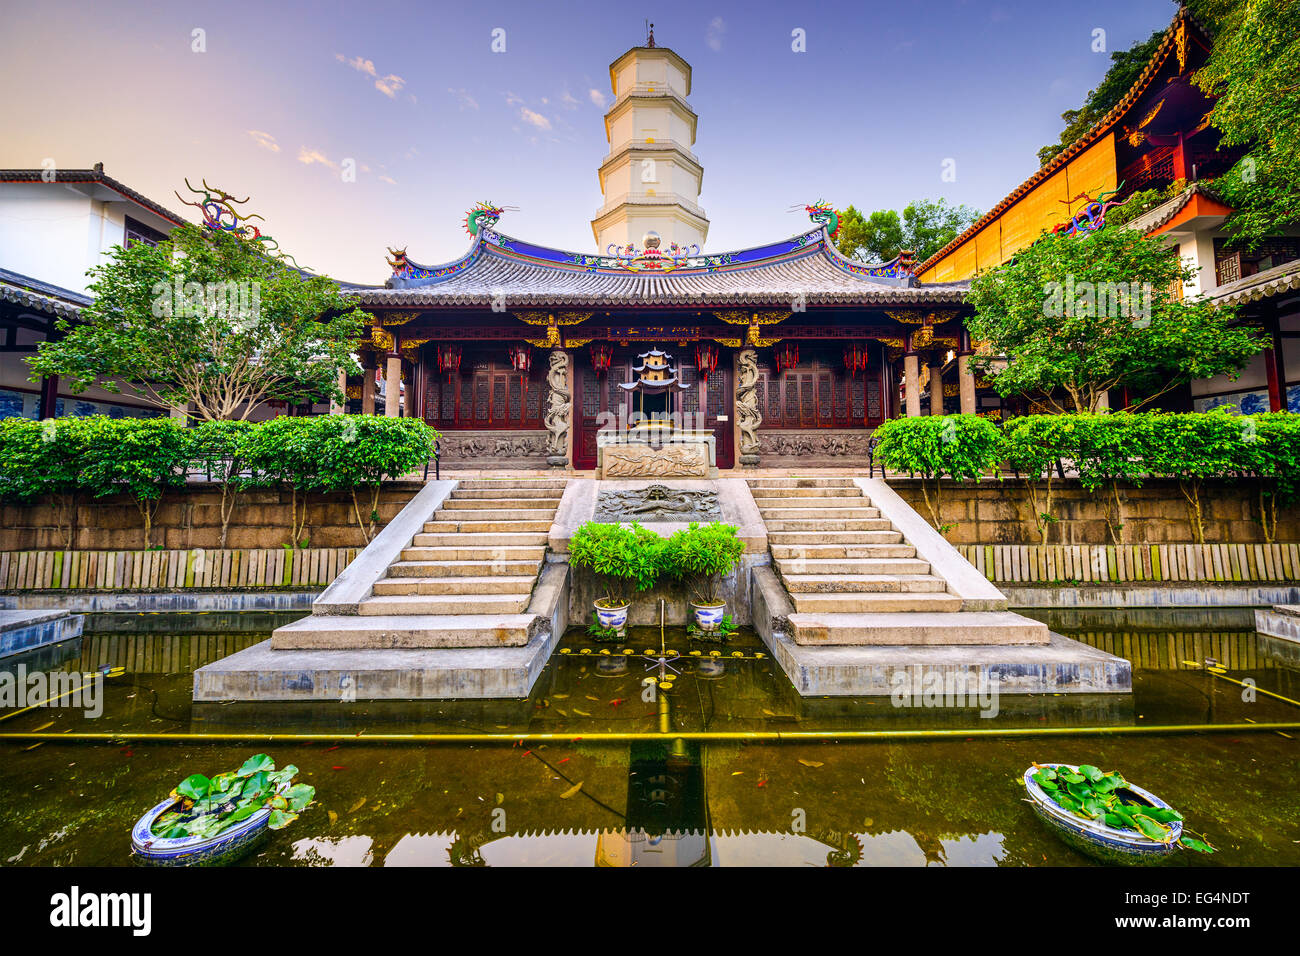 Fuzhou, Fujian, China at the White Pagoda Temple on Yushan Hill. - Stock Image